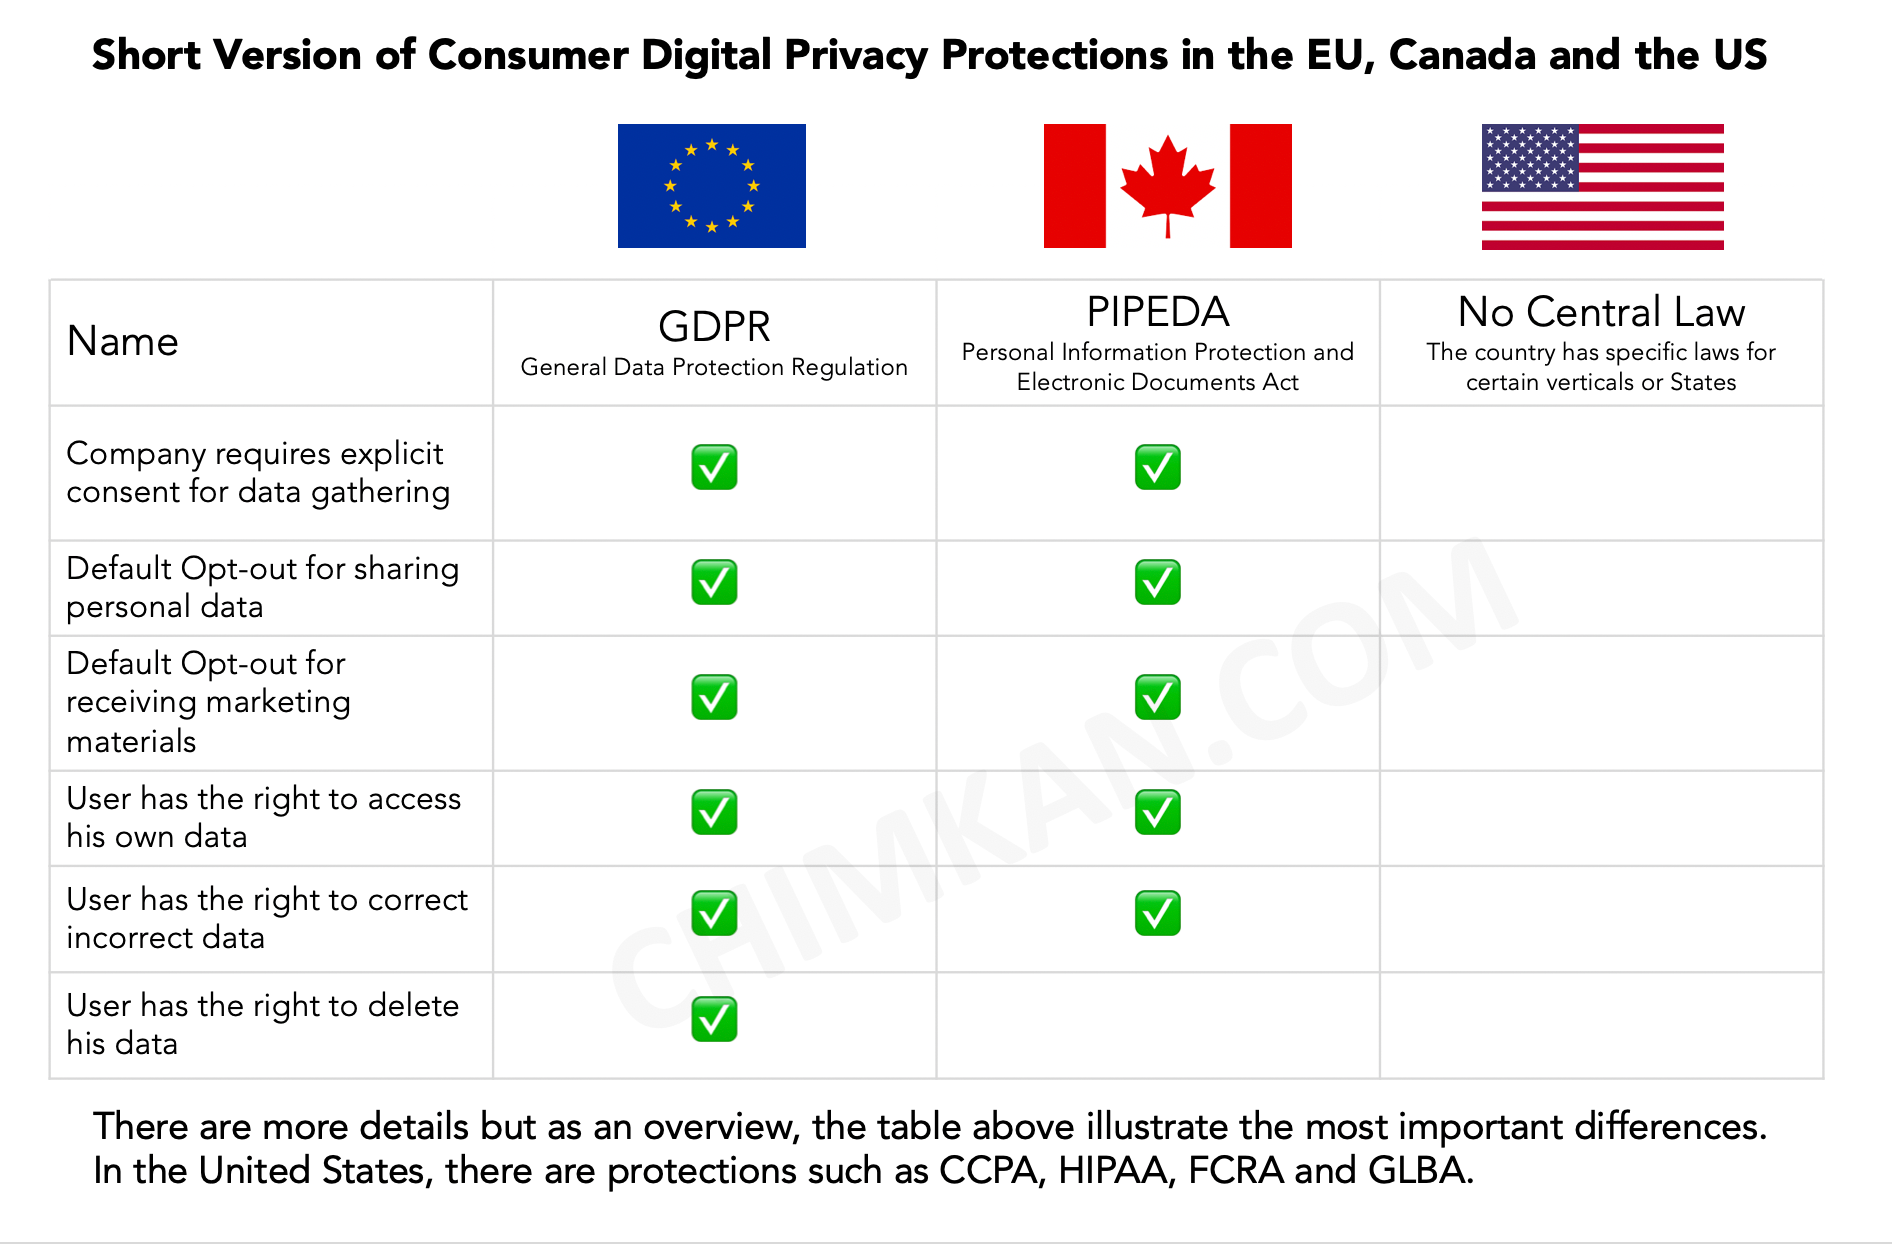 Summary of Consumer Digital Privacy Protections in the EU, Canada and the US